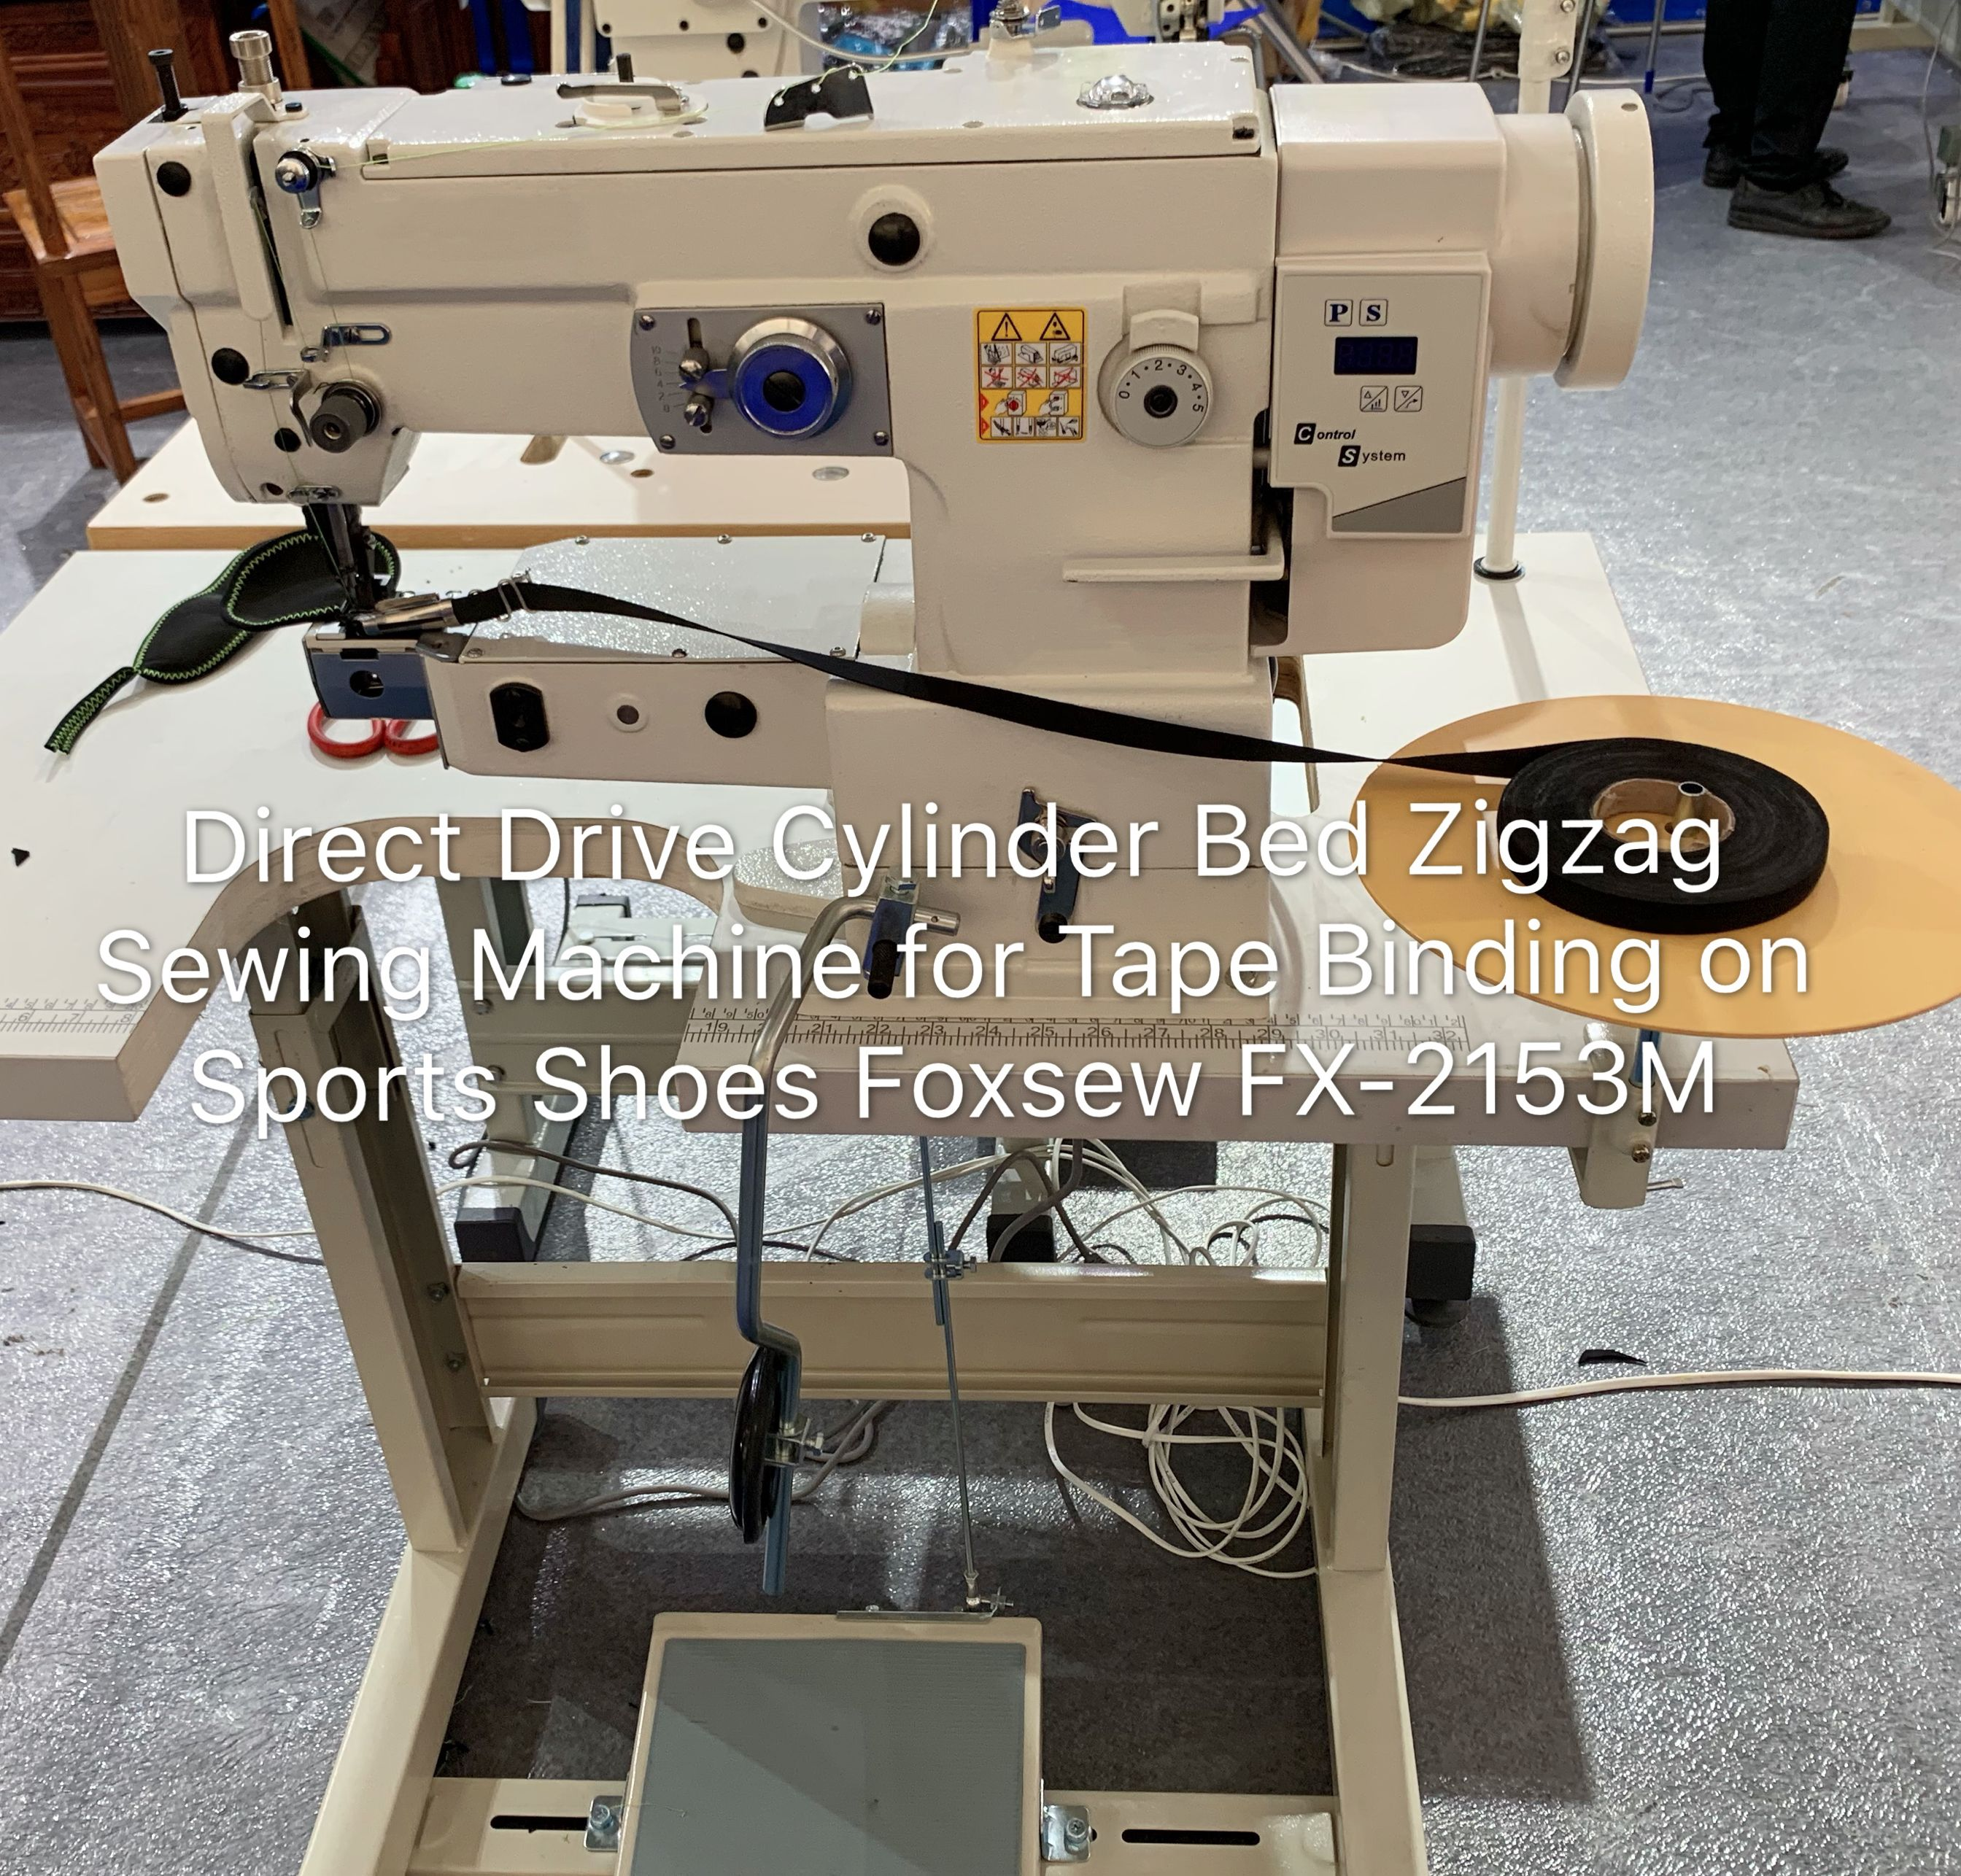 Direct Drive Cylinder Bed Zigzag Sewing Machine For Tape Binding On Sports Shoes Foxsew Fx 2153m